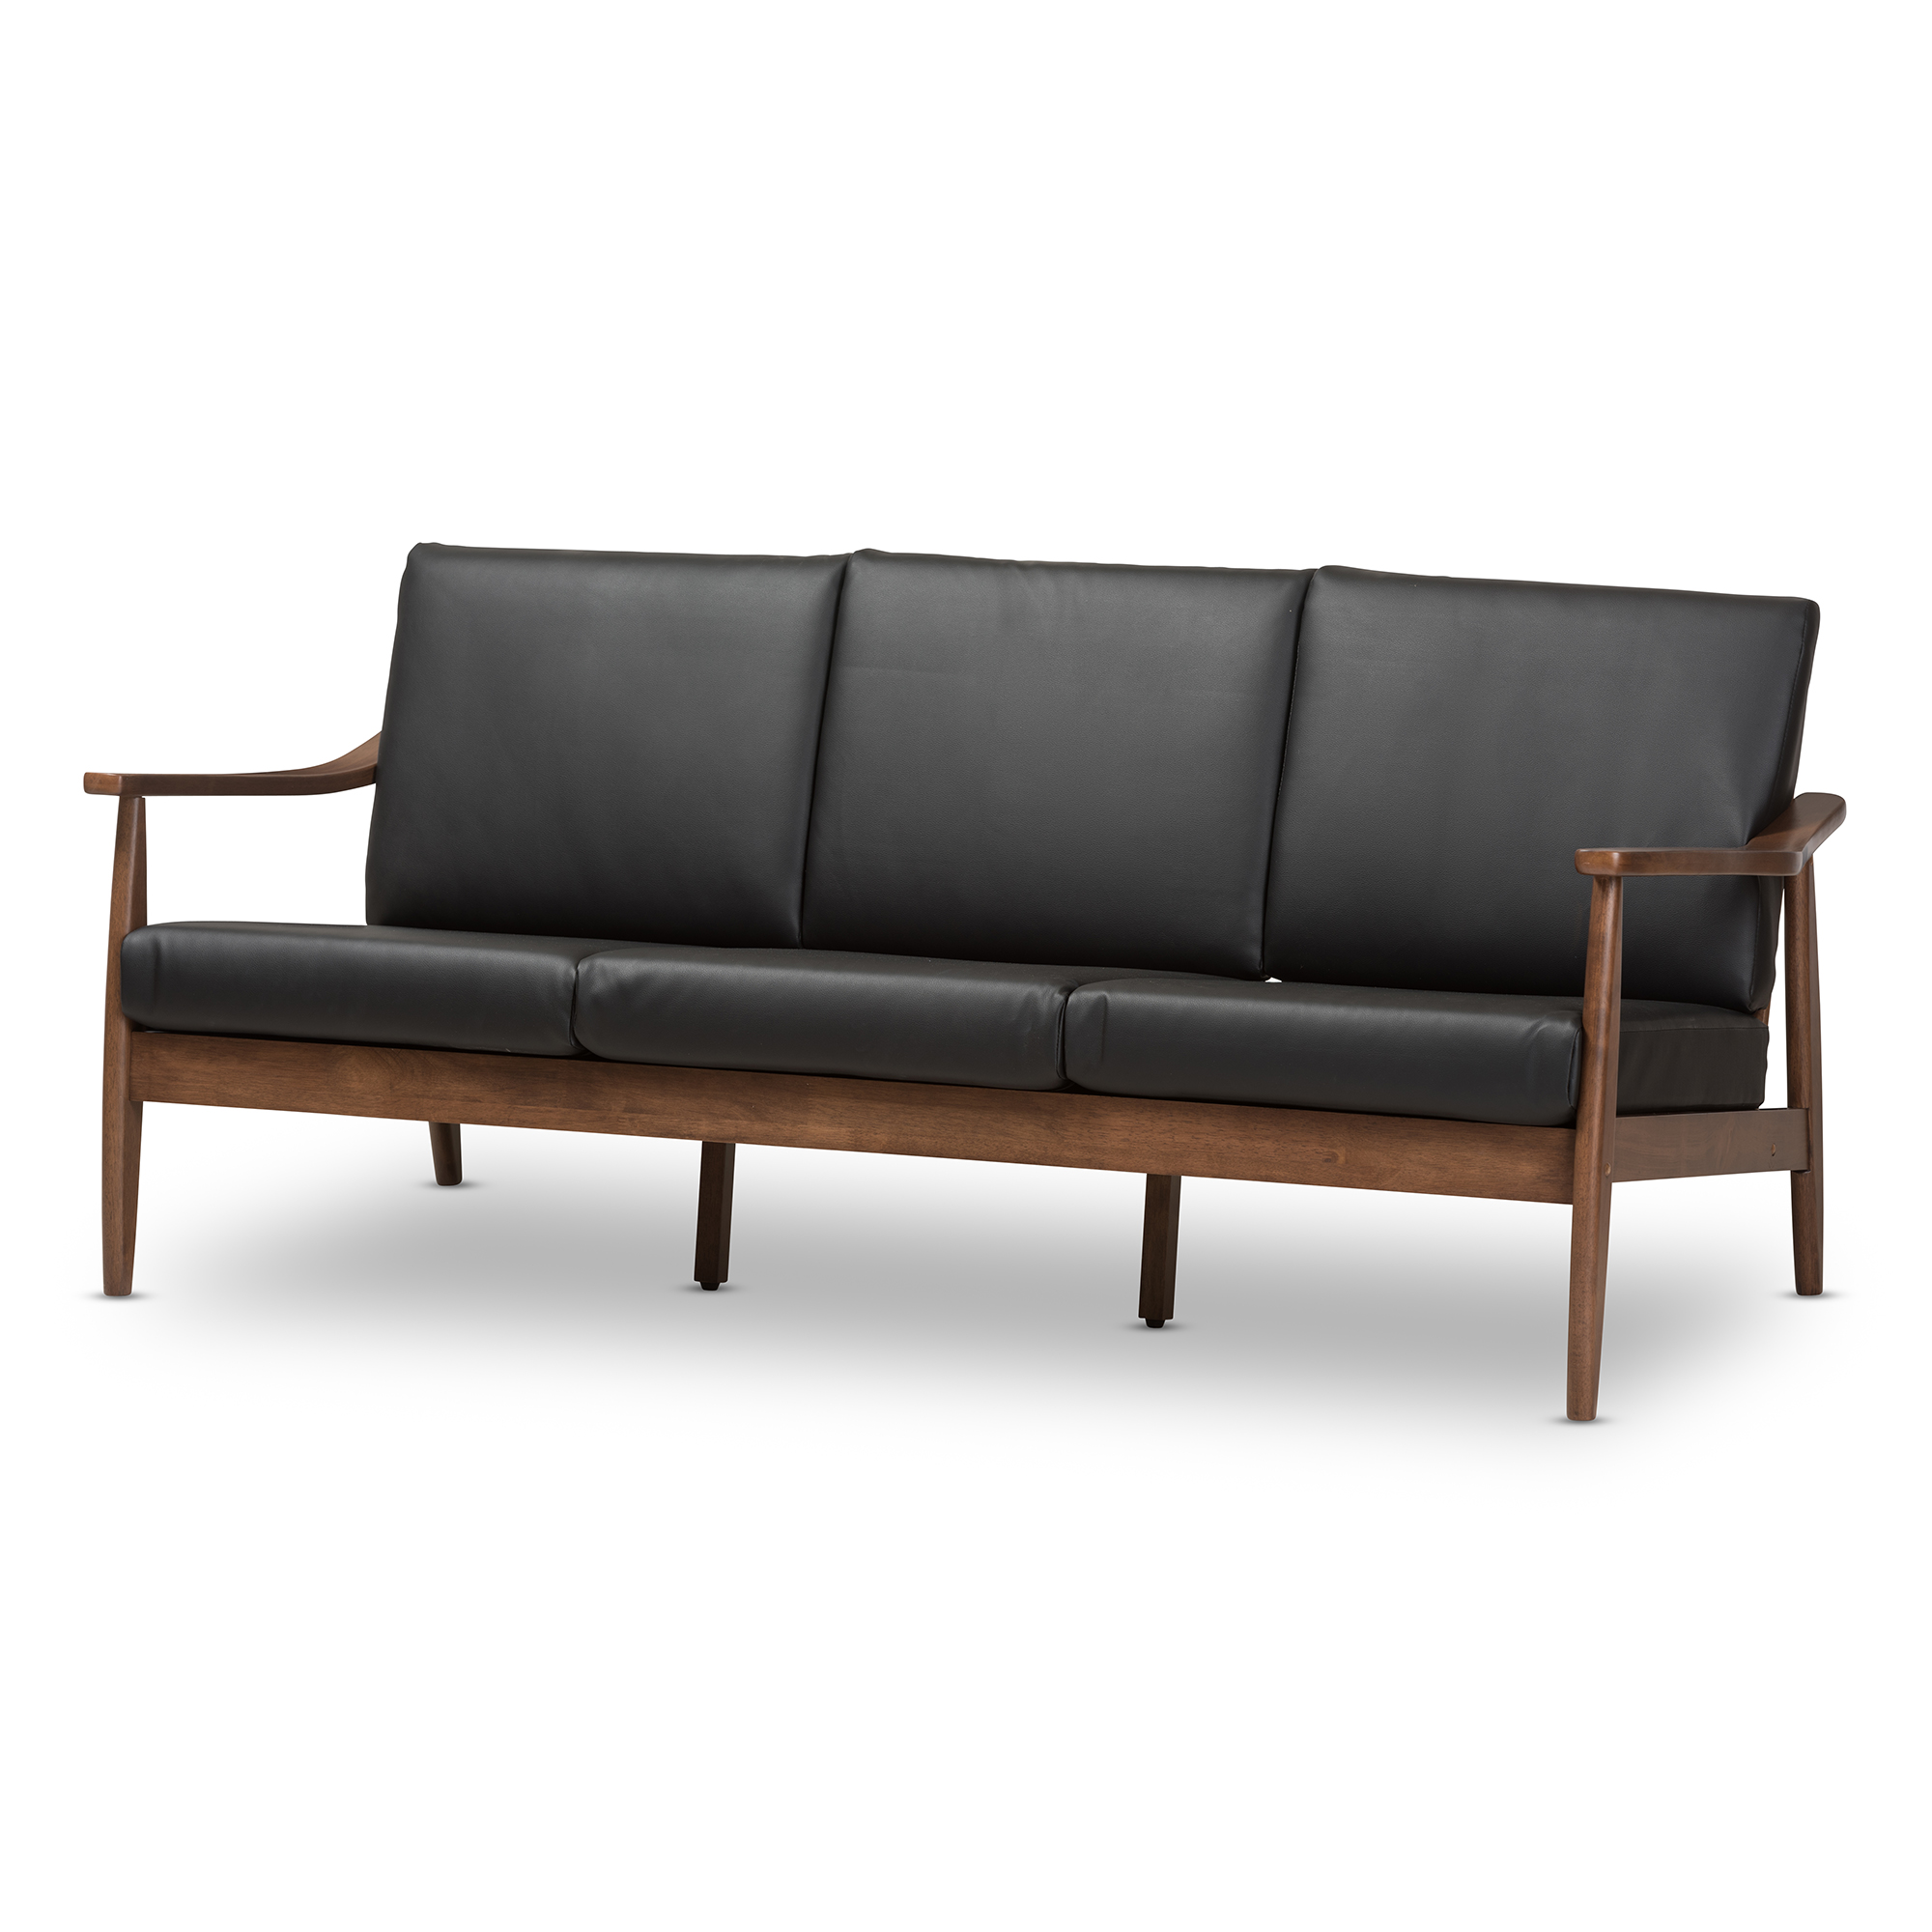 Baxton Studio Venza Mid Century Modern Walnut Wood Black Faux Leather  3 Seater Sofa